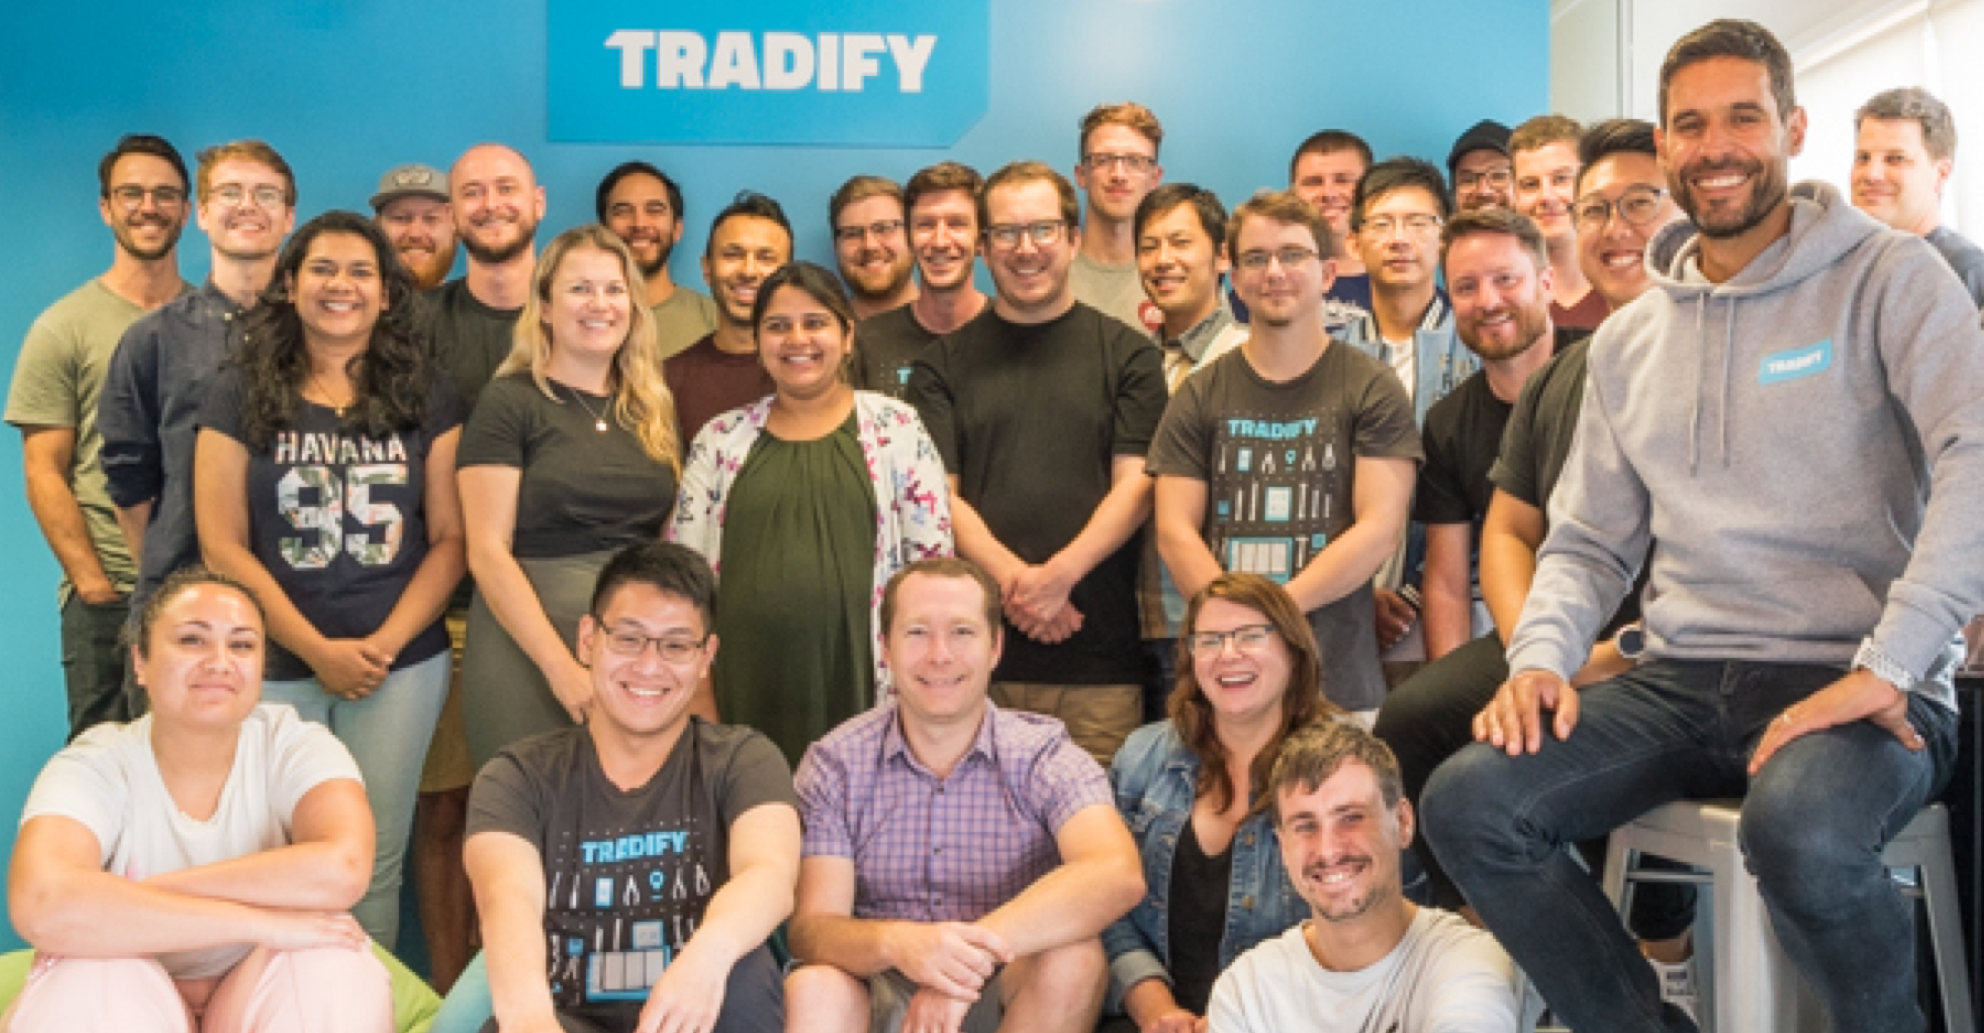 The smiling Tradify team